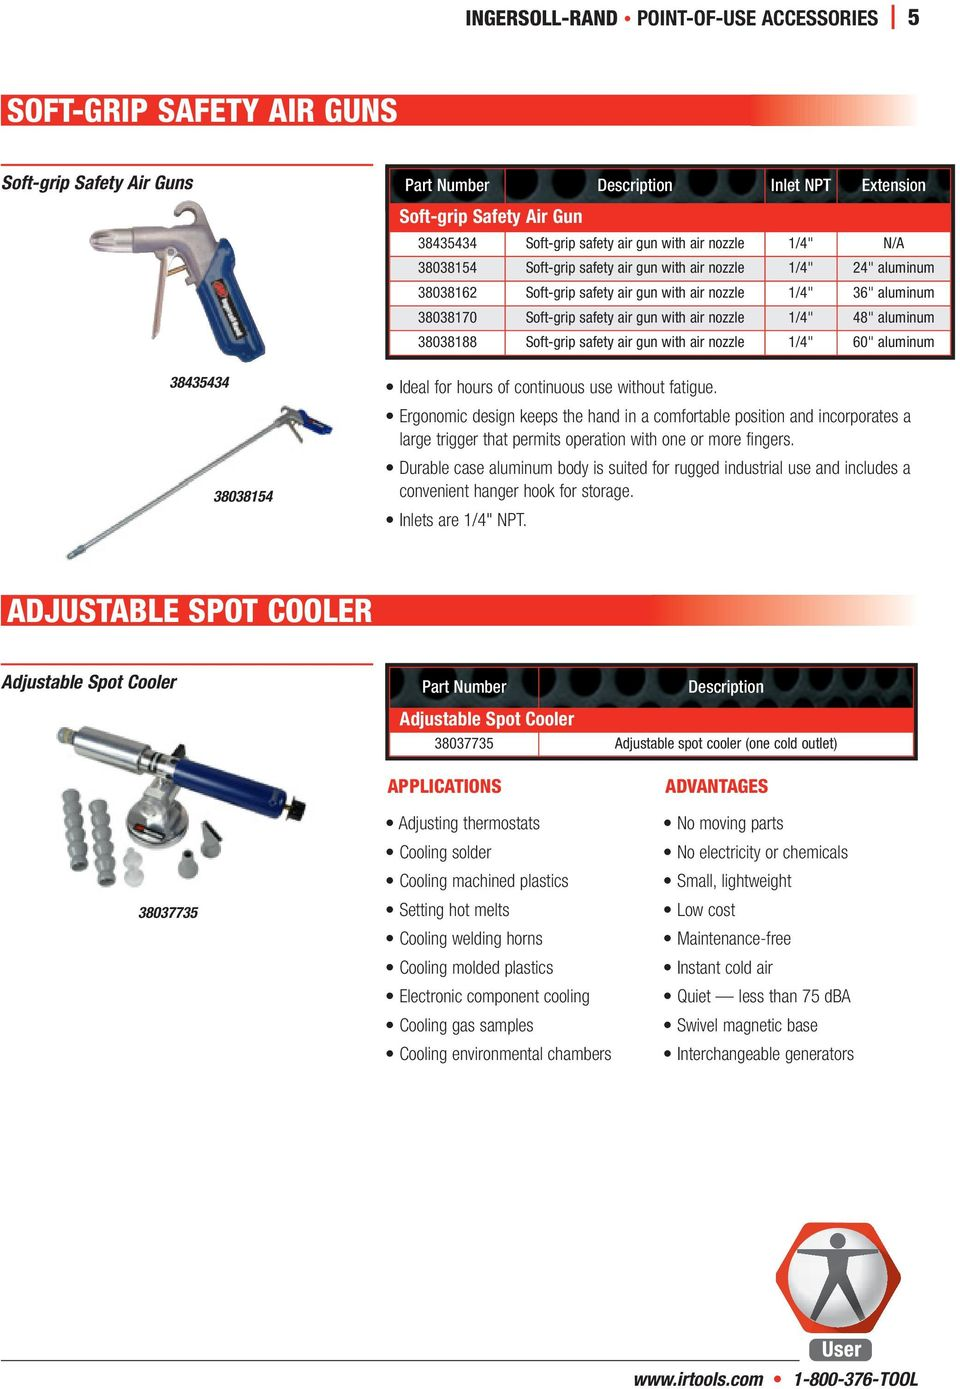 "nozzle 1/4"" 48"" aluminum 38038188 Soft-grip safety air gun with air nozzle 1/4"" 60"" aluminum Ideal for hours of continuous use without fatigue."